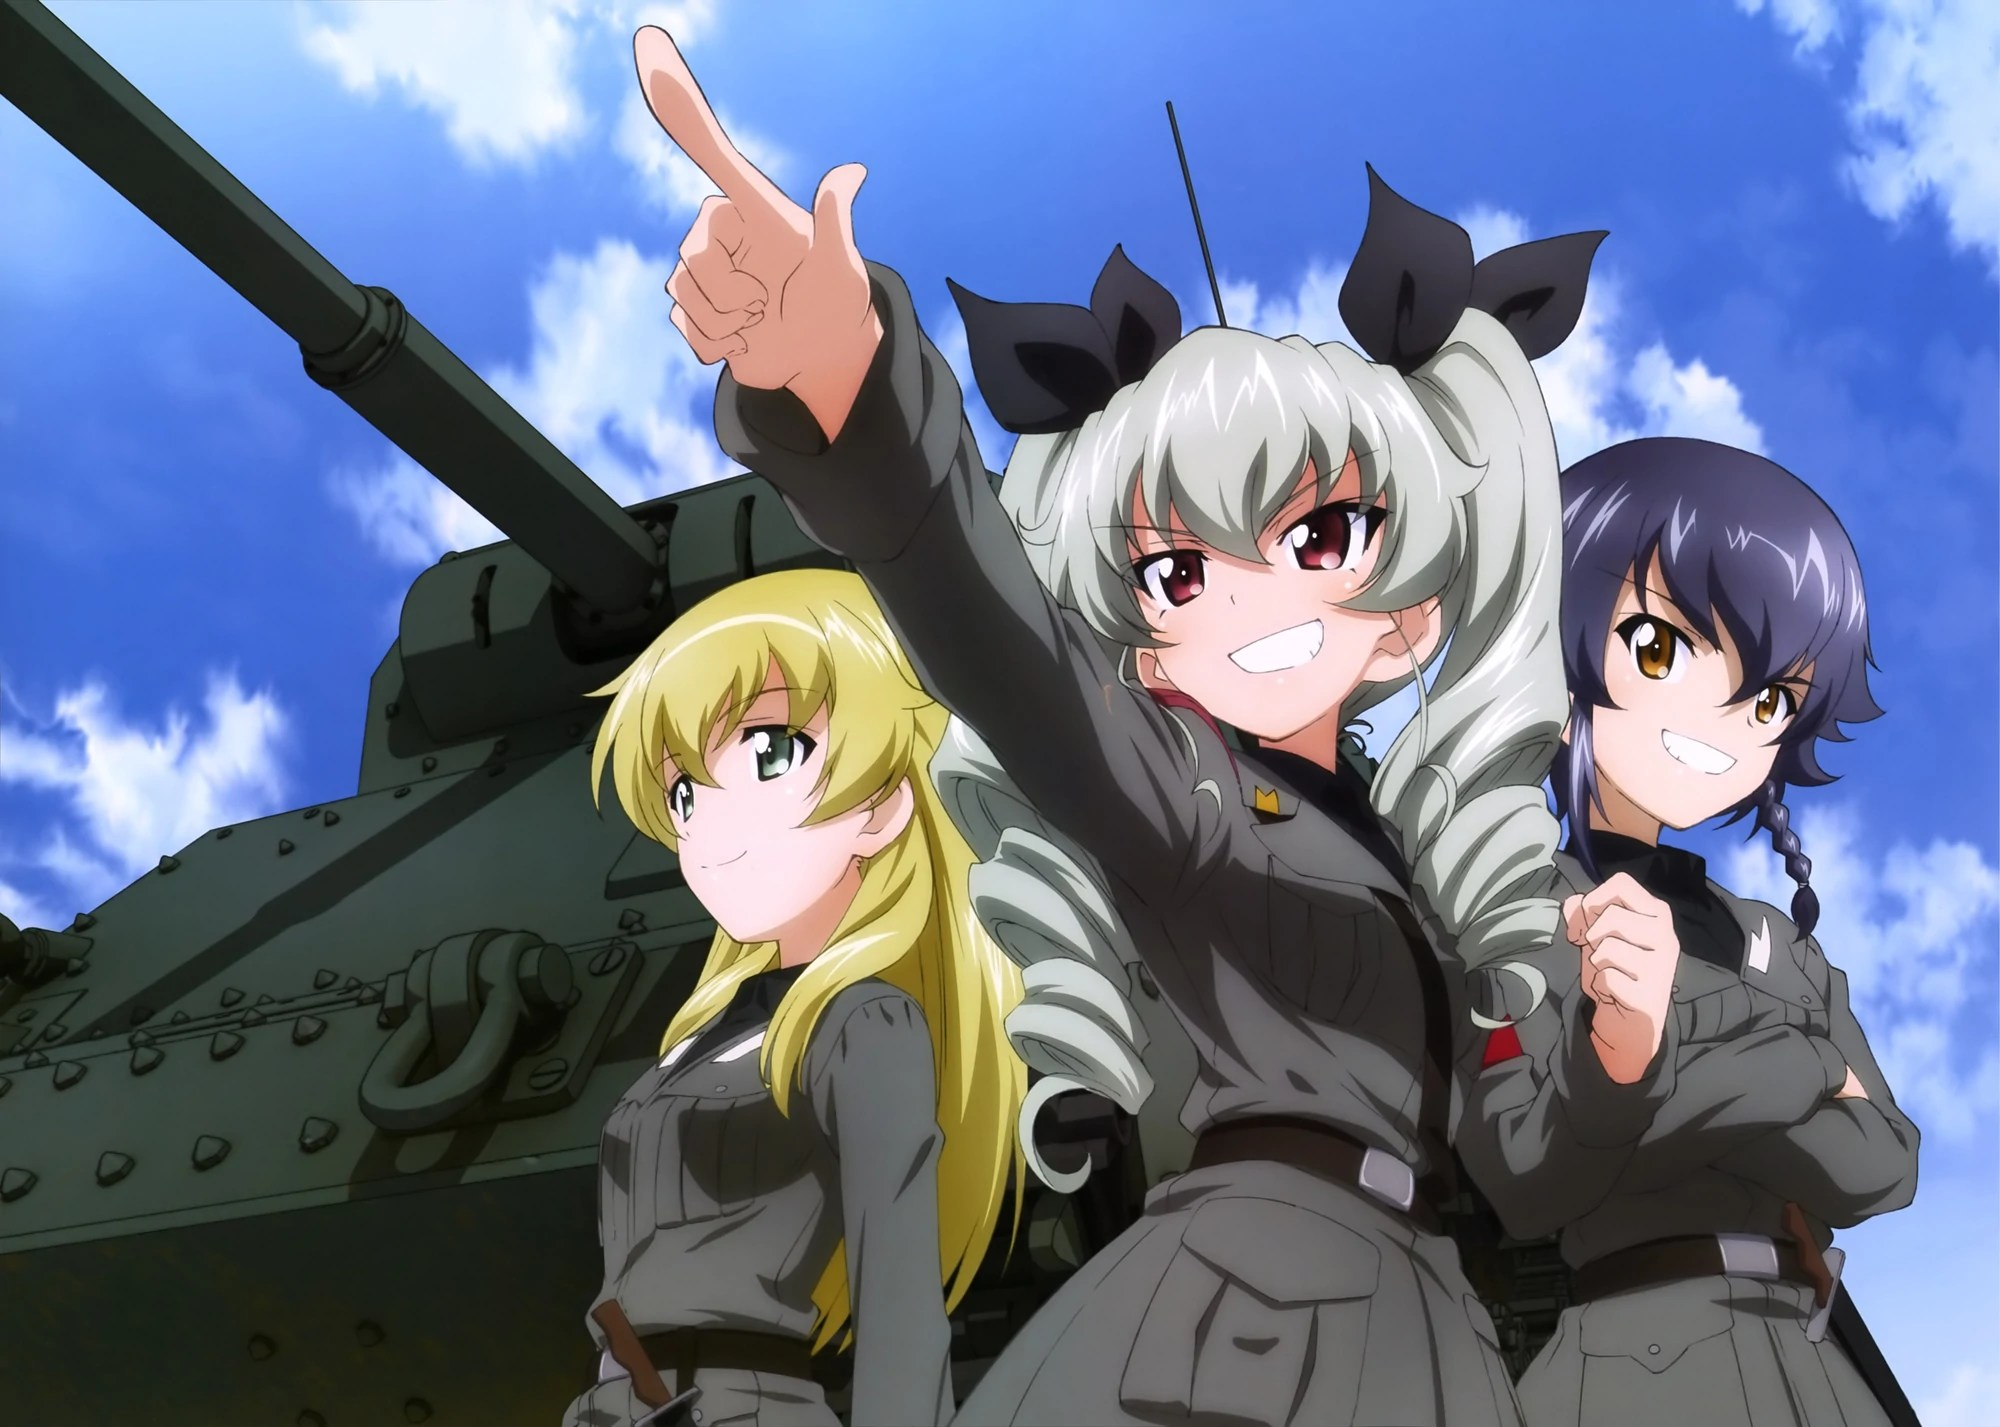 20+ Girls Und Panzer Pictures and Ideas on STEM Education Caucus